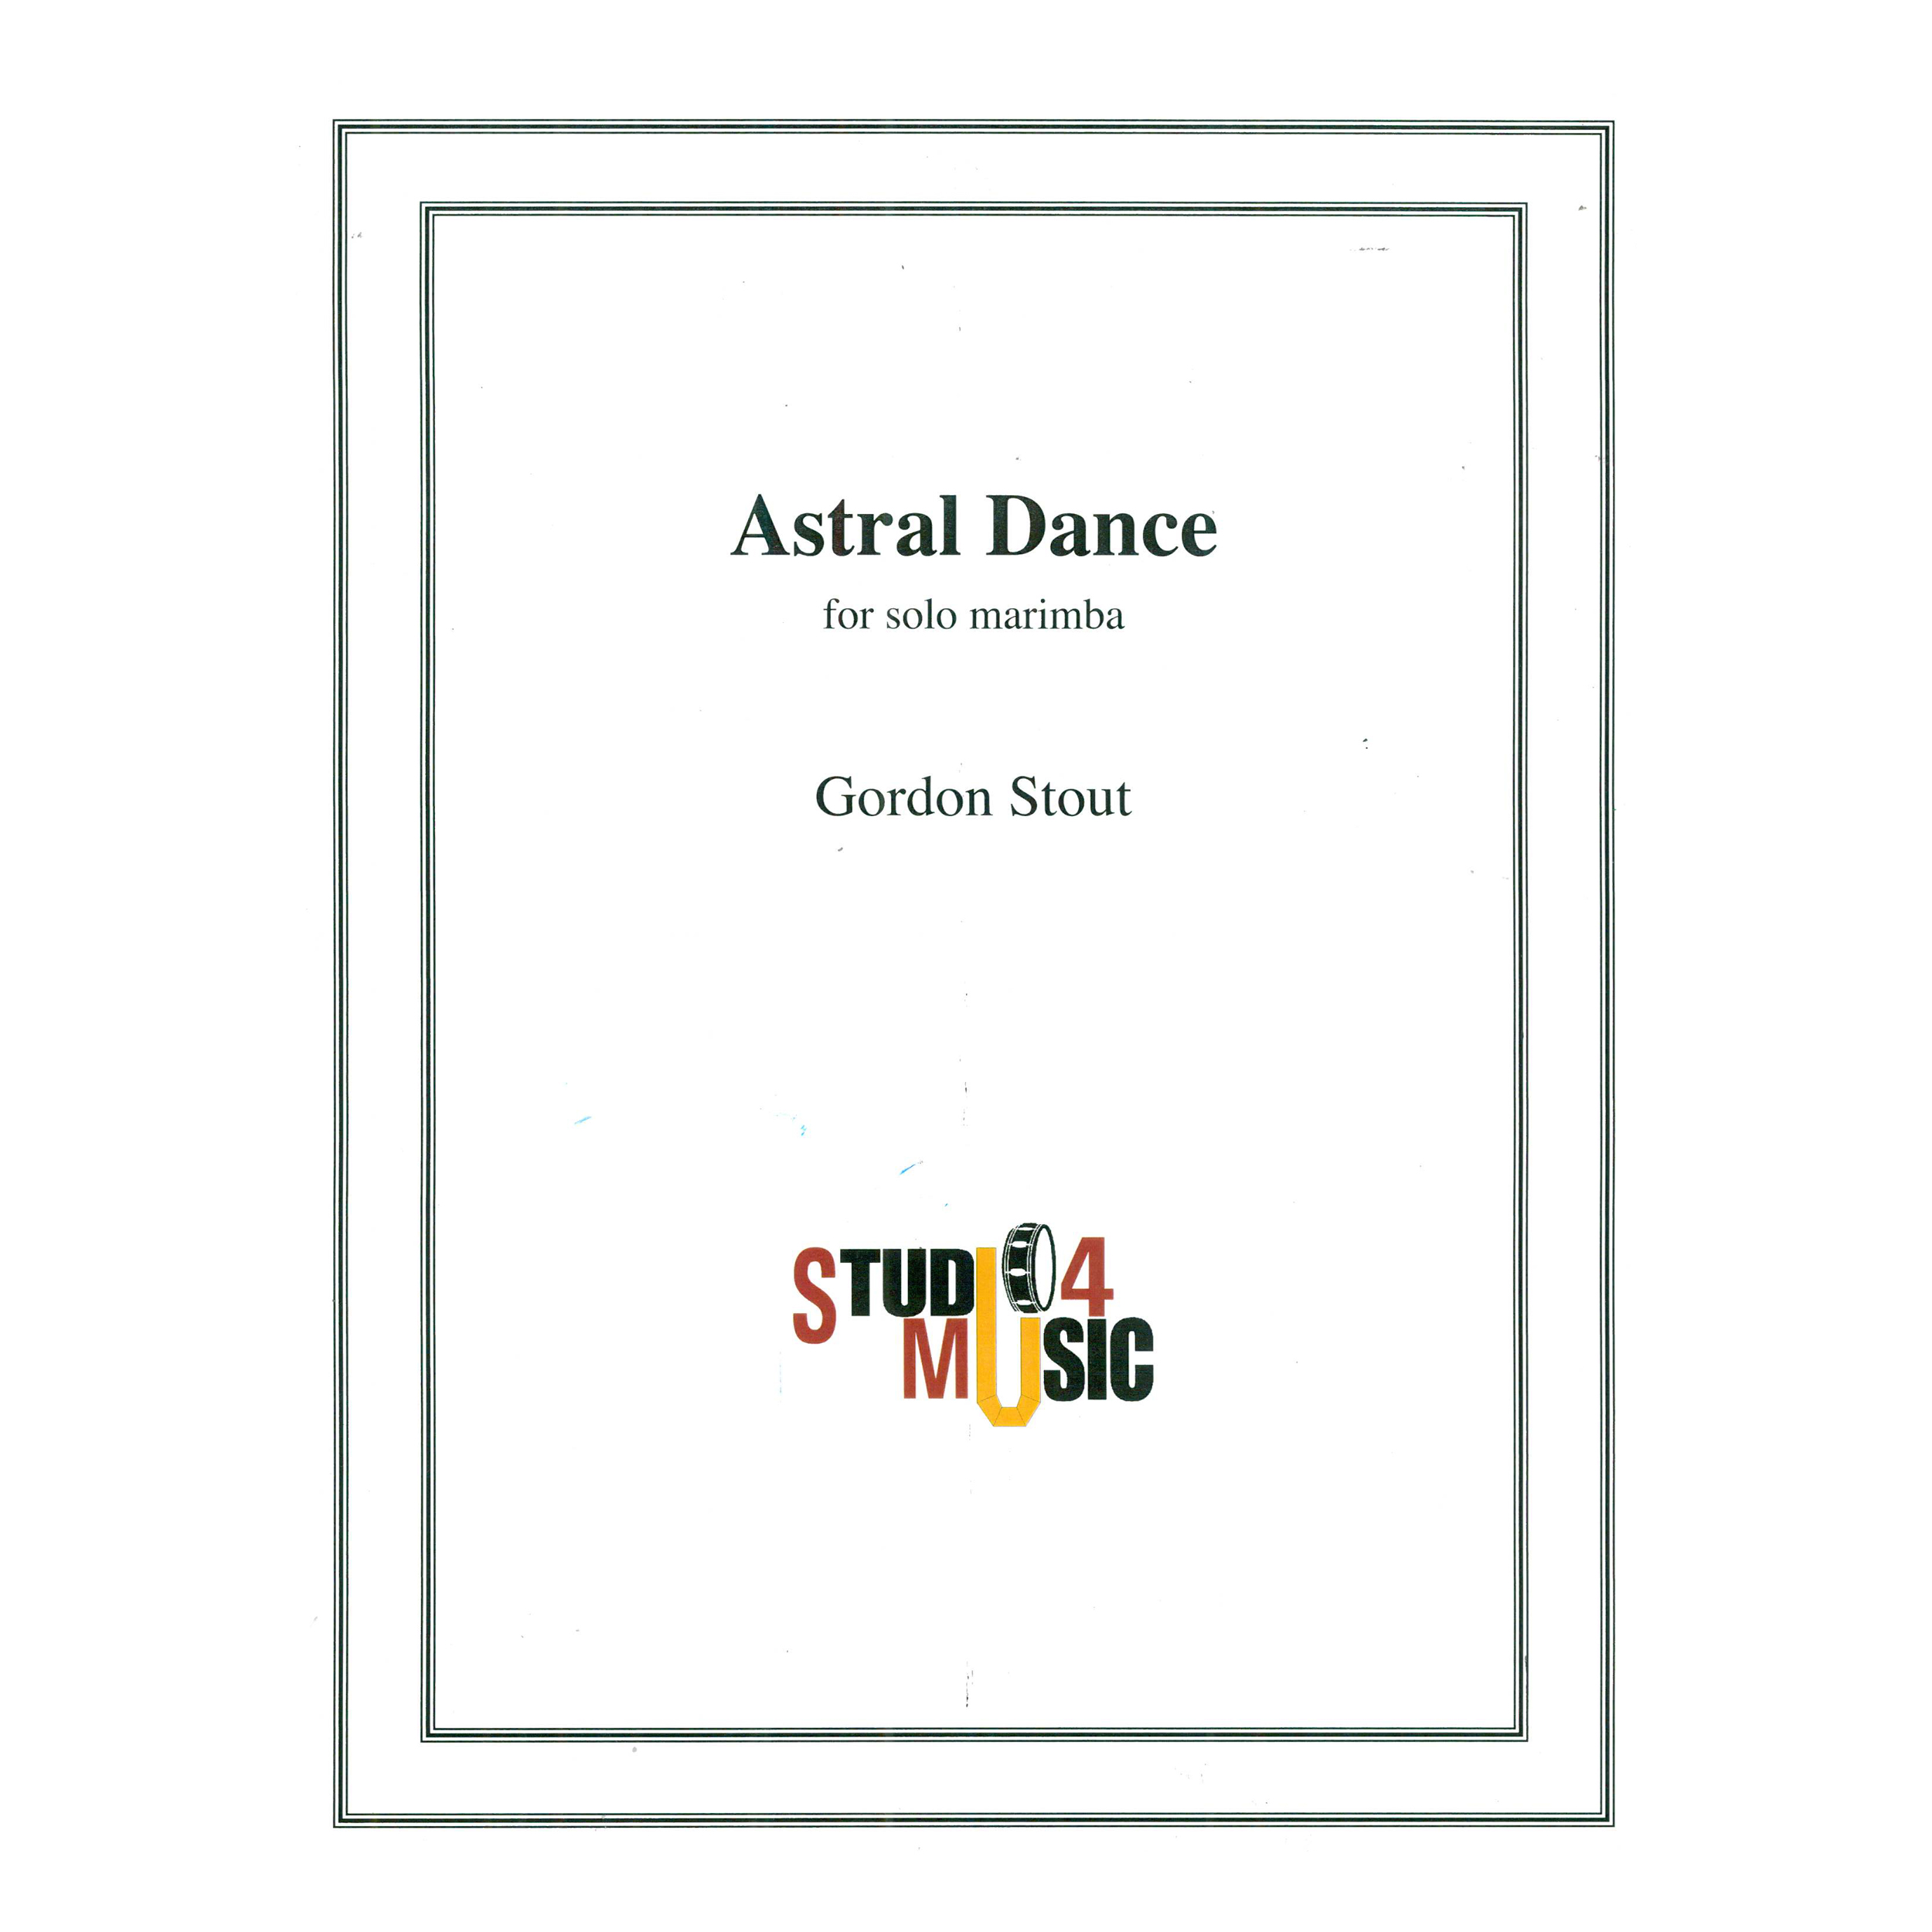 Astral Dance by Gordon Stout